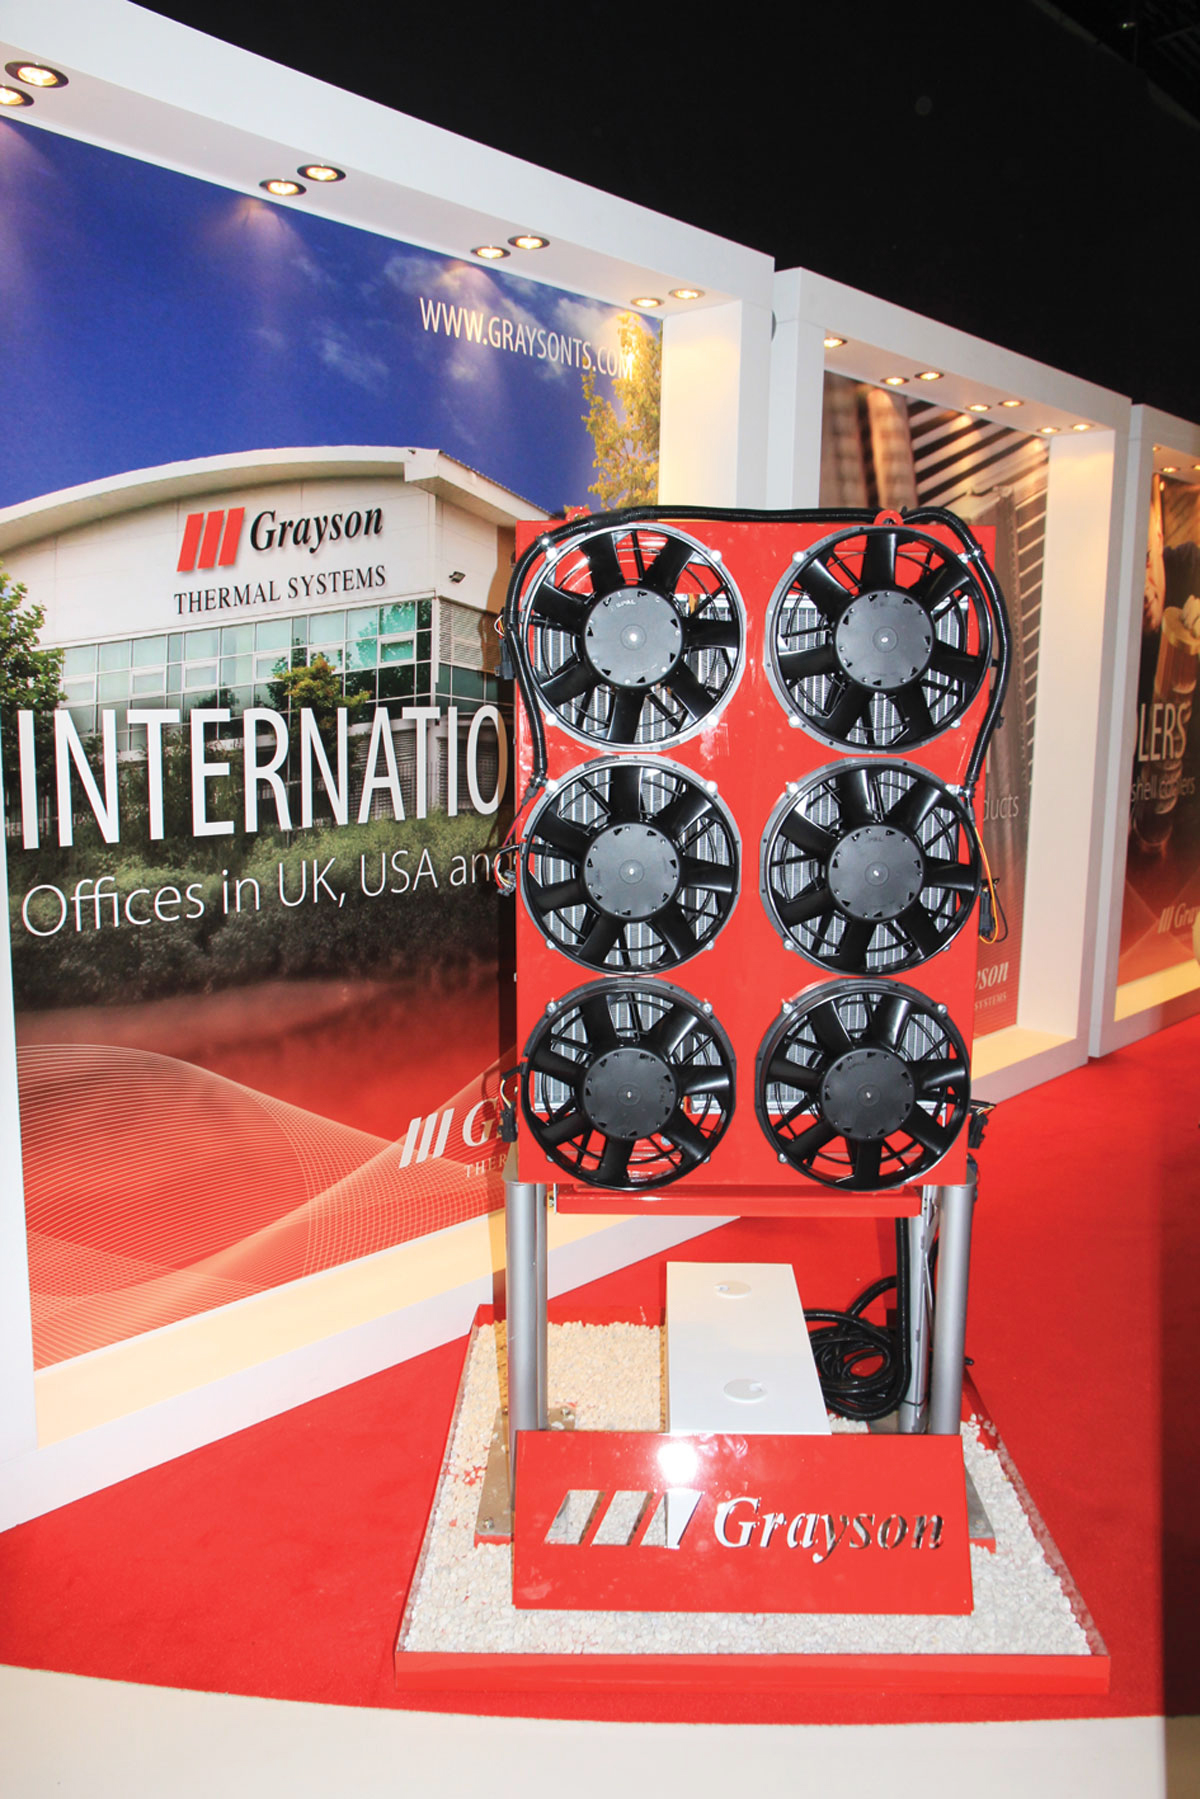 The E-Drive system on display at Grayson Thermal Systems' stand.